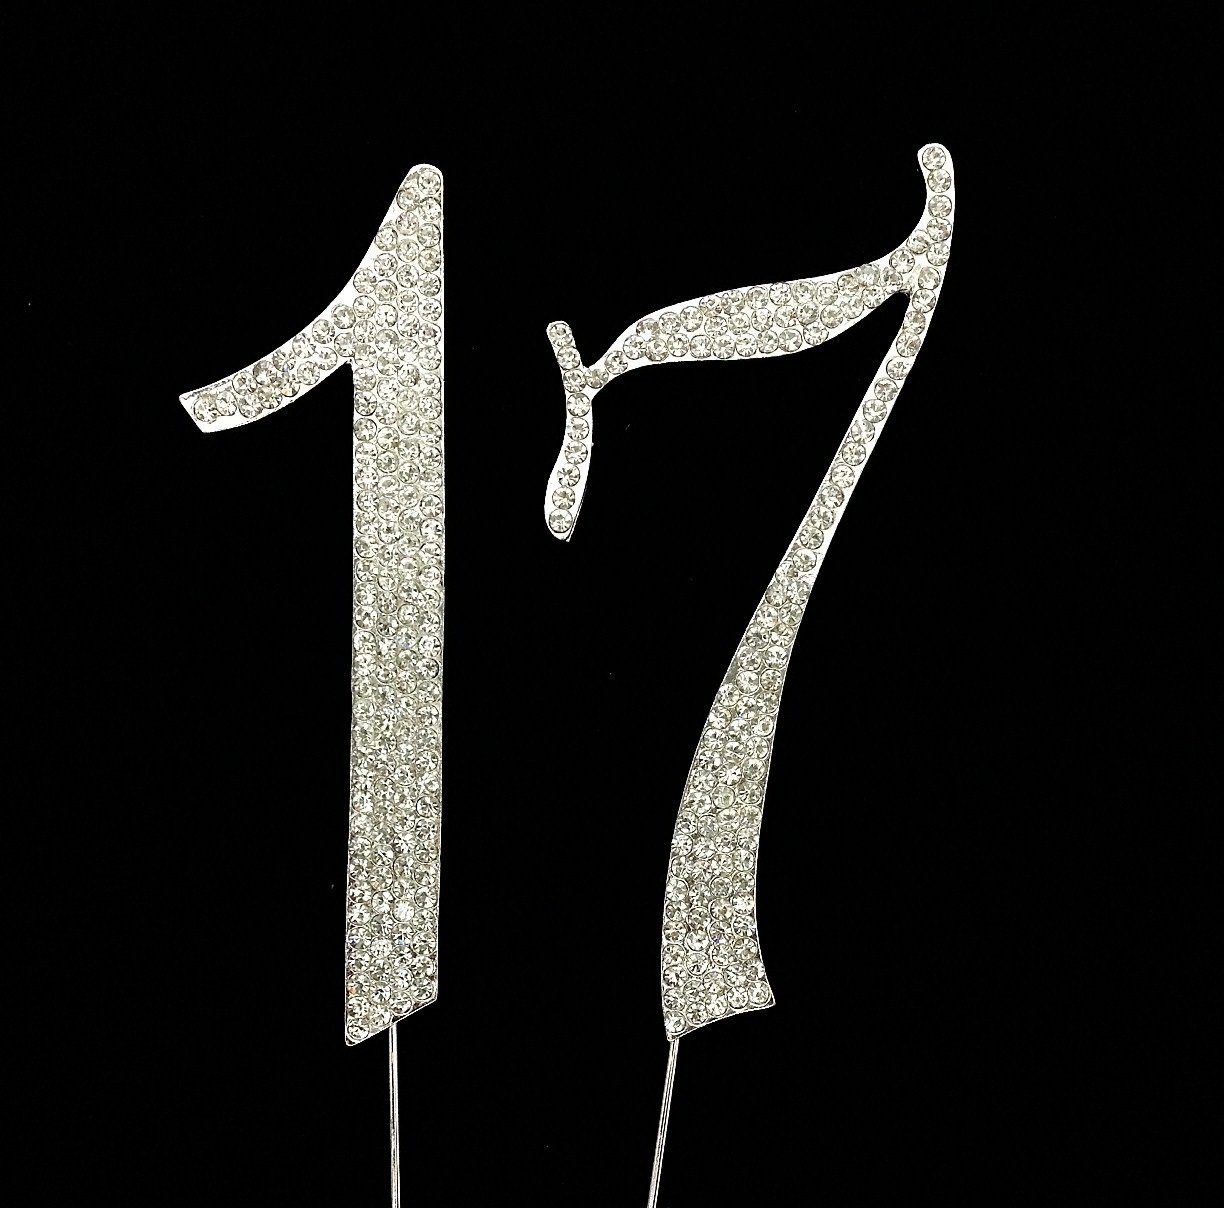 Silver Numbrer 17 for 17th Birthday or Anniversary Cake Topper Party Decoration Supplies 4.5 Inches Tall CC-NRCT-2 17th Year Cake Topper